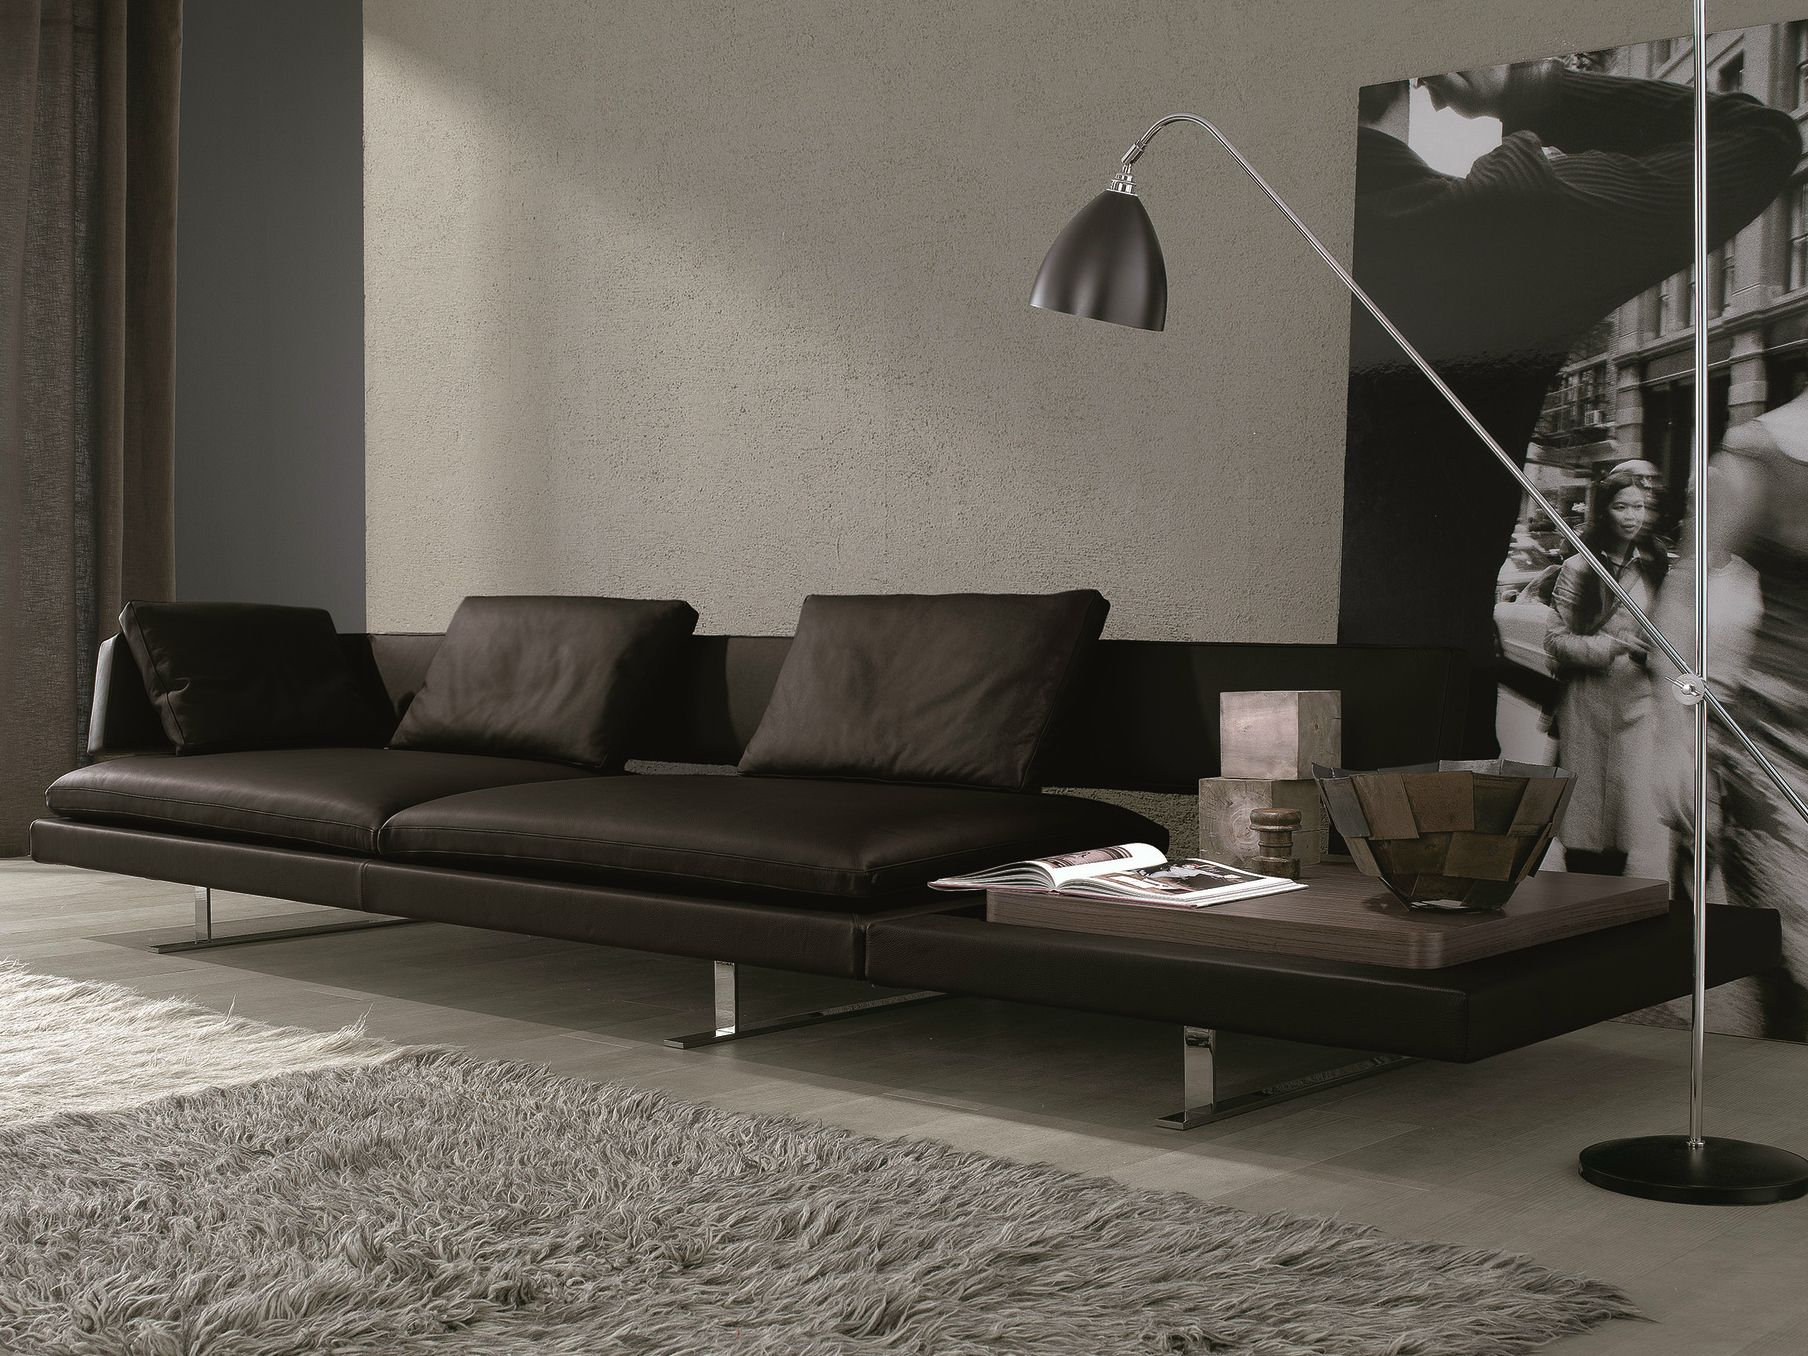 traditional italian seater couch black furniture chair size of sofas sectional corner couches modern full sofa leather